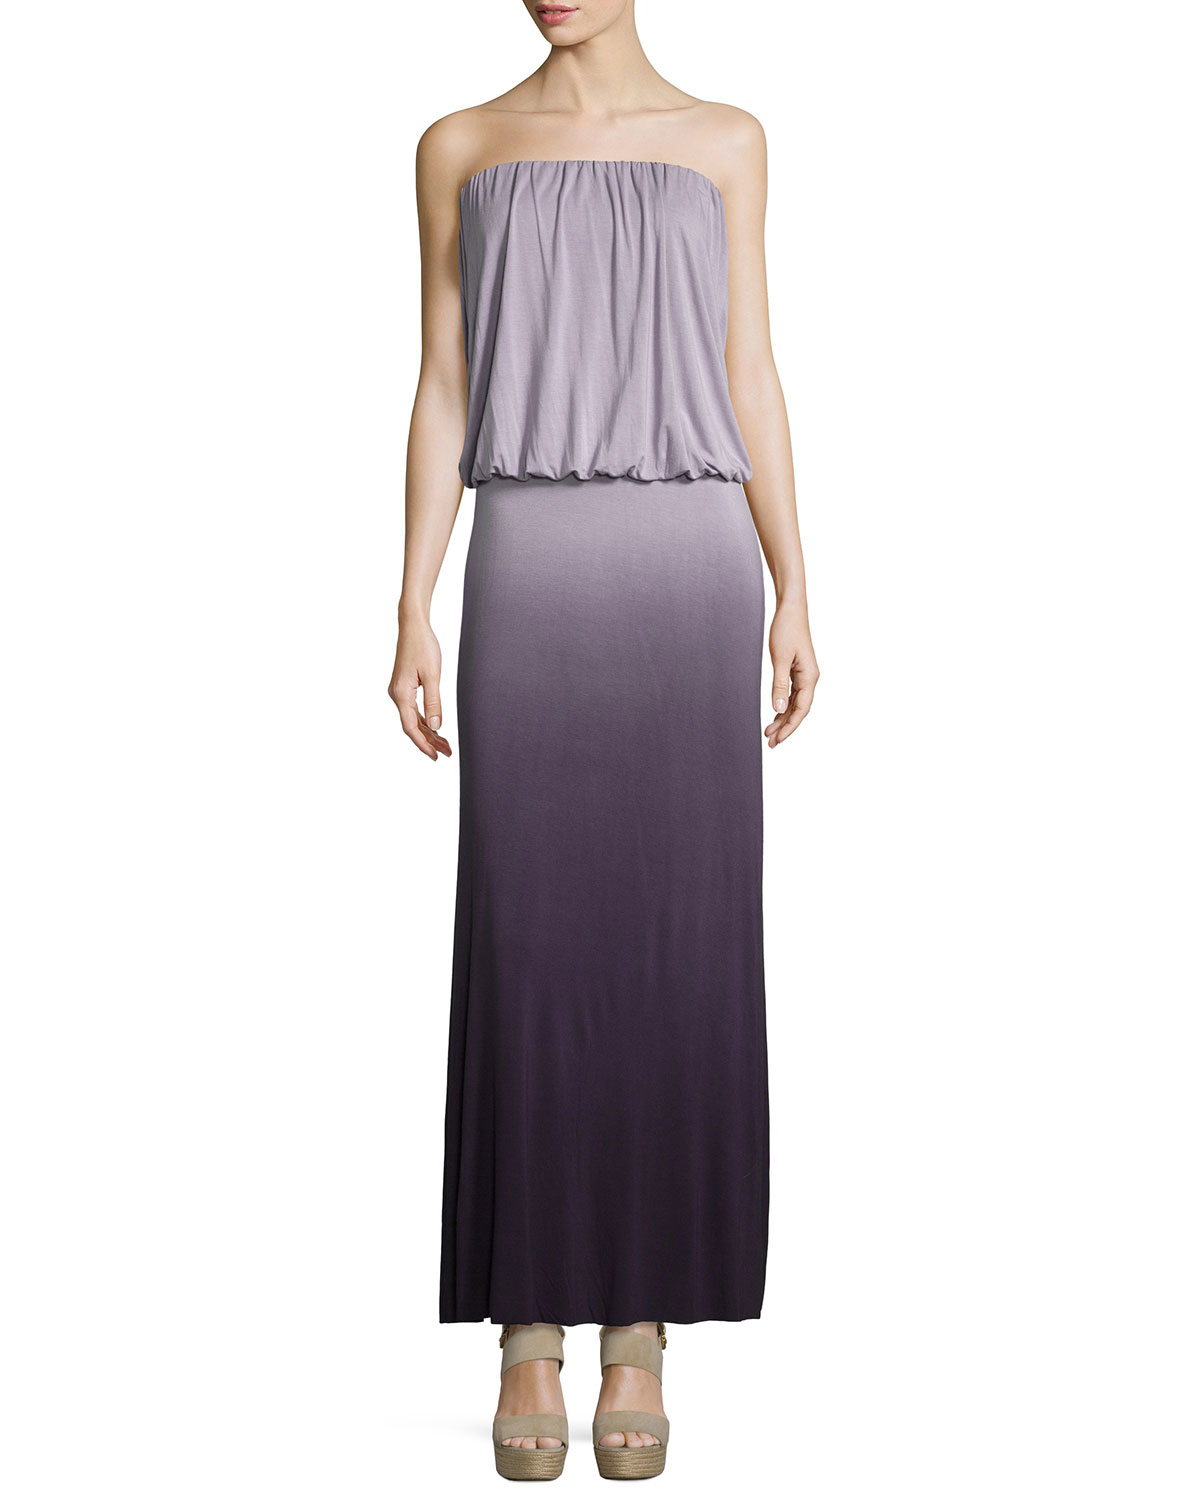 Young fabulous & broke Sydney Strapless Ombre Maxi Dress ...